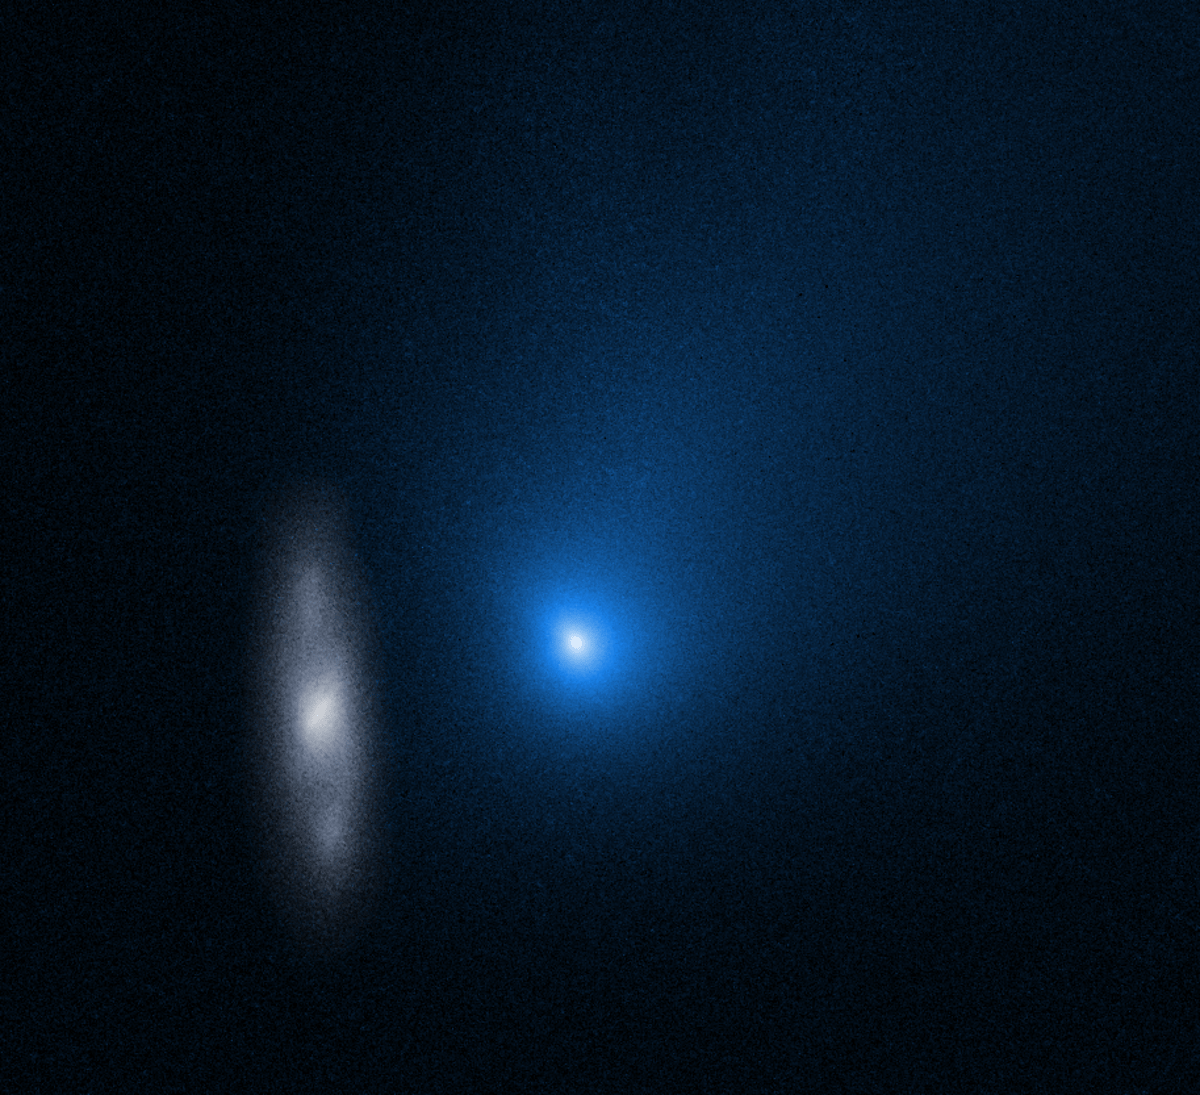 Hubble has captured new images of the interstellar comet 2I/Borisov